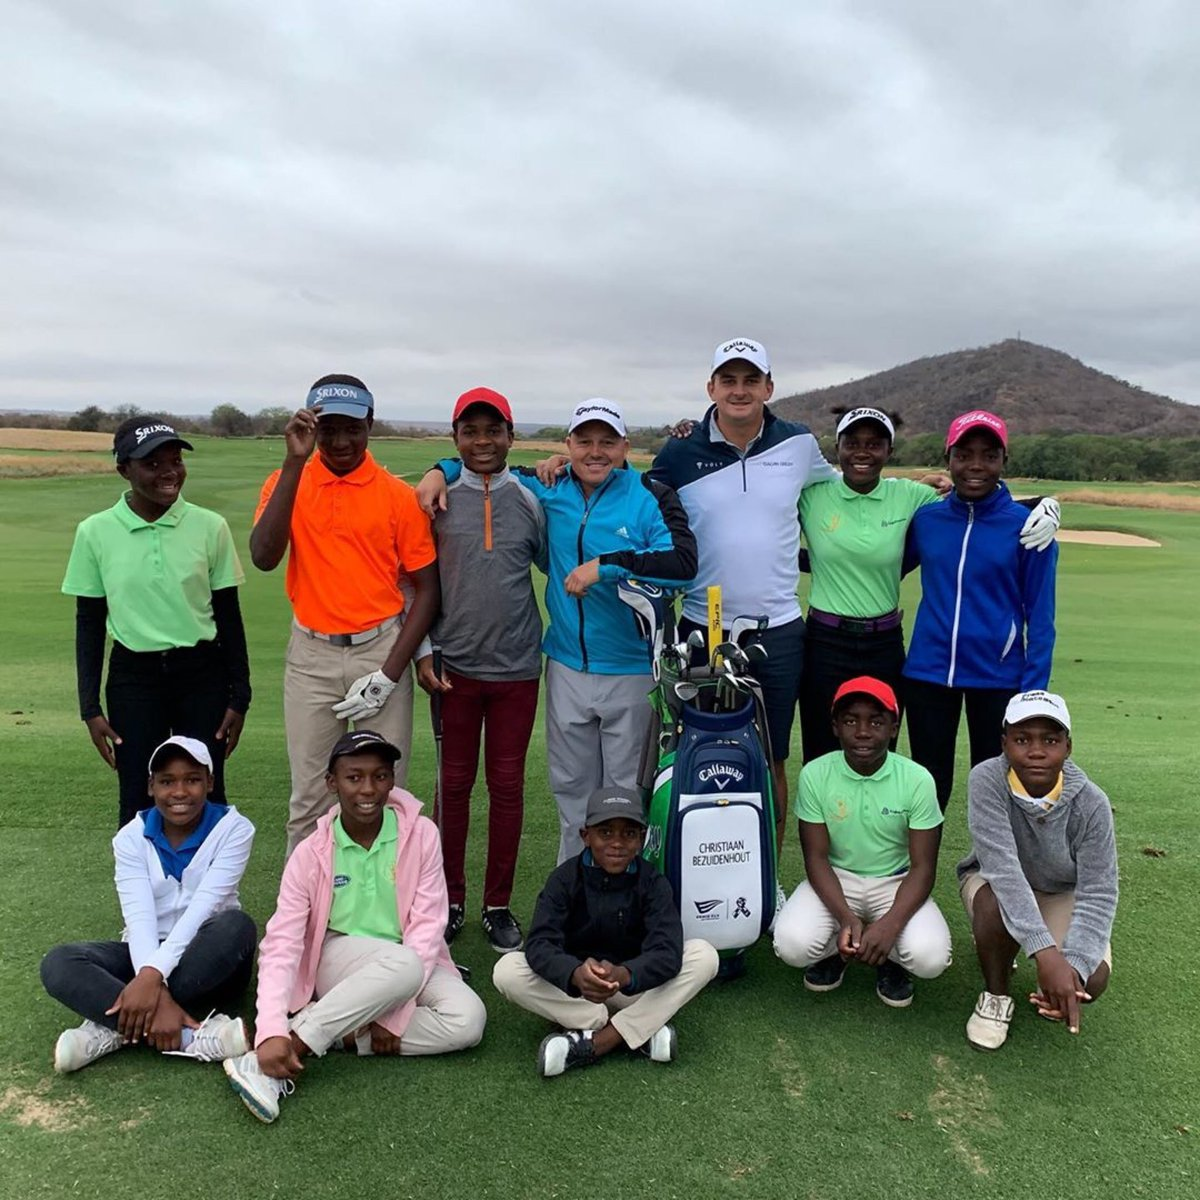 Christiaan Bezuidenhout giving back coaching kids at home in South Africa. @BezChristiaan